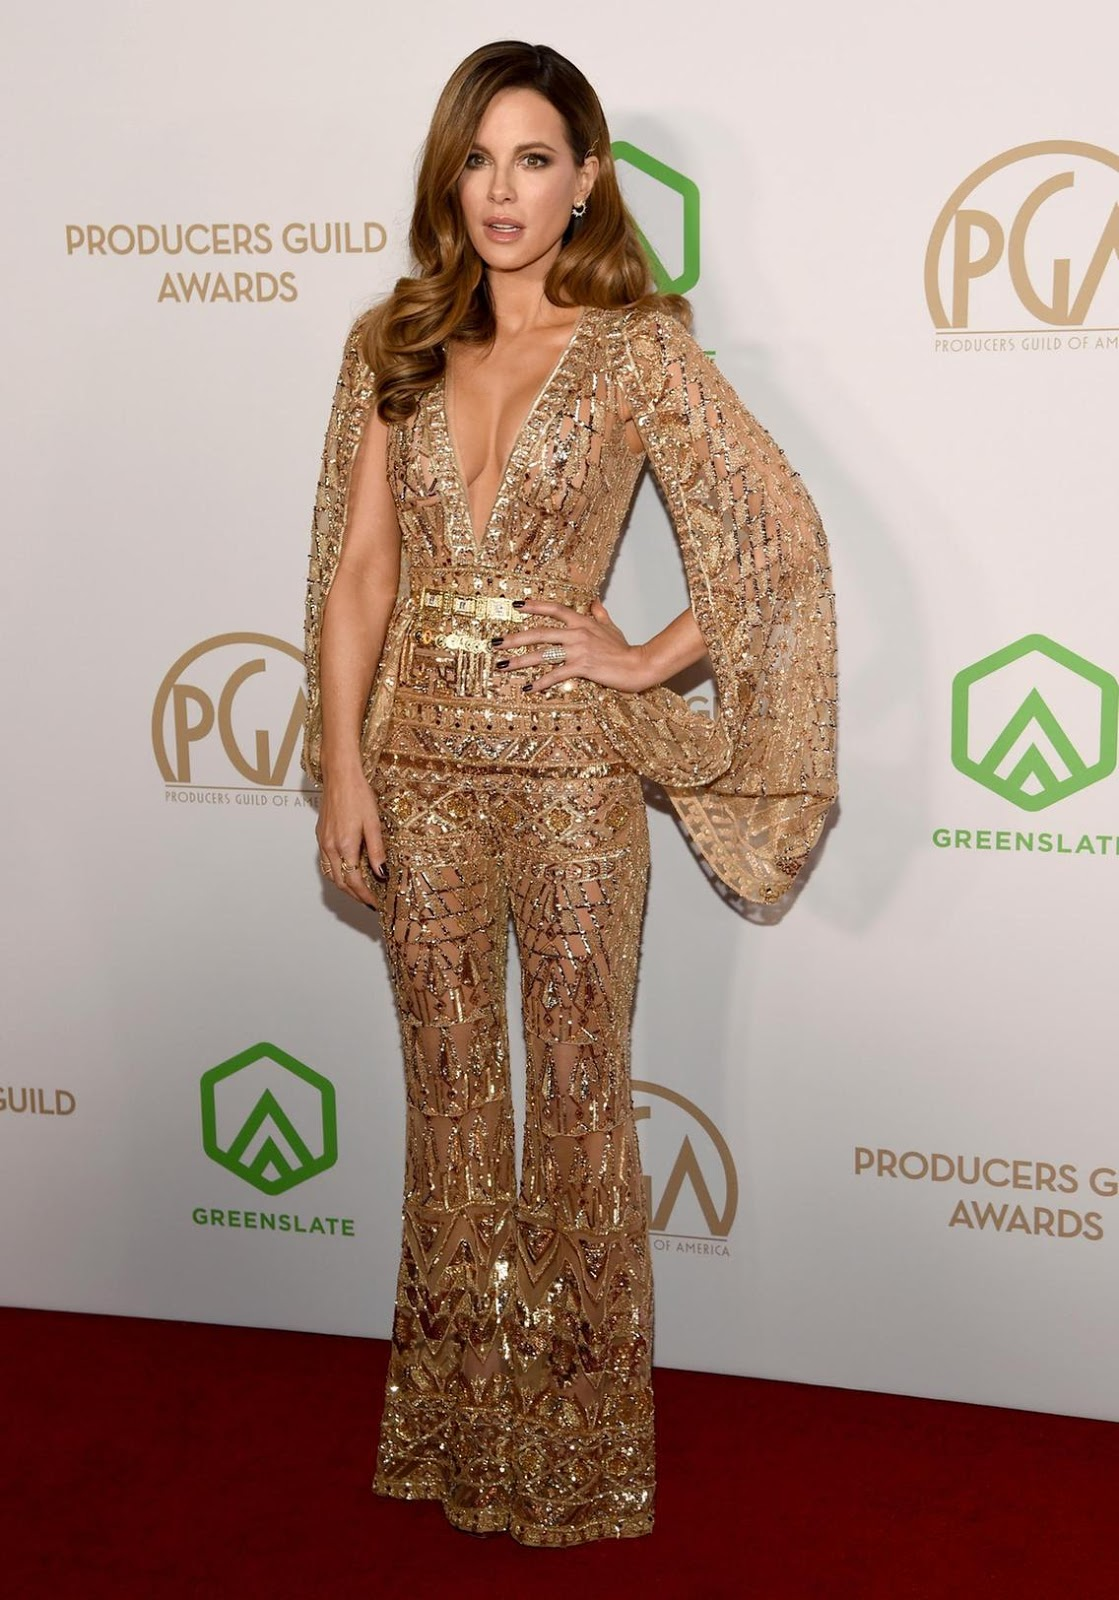 Kate Beckinsale in Zuhair Muard Fall 2019 Couture at the 2020 Producers Guild Awards